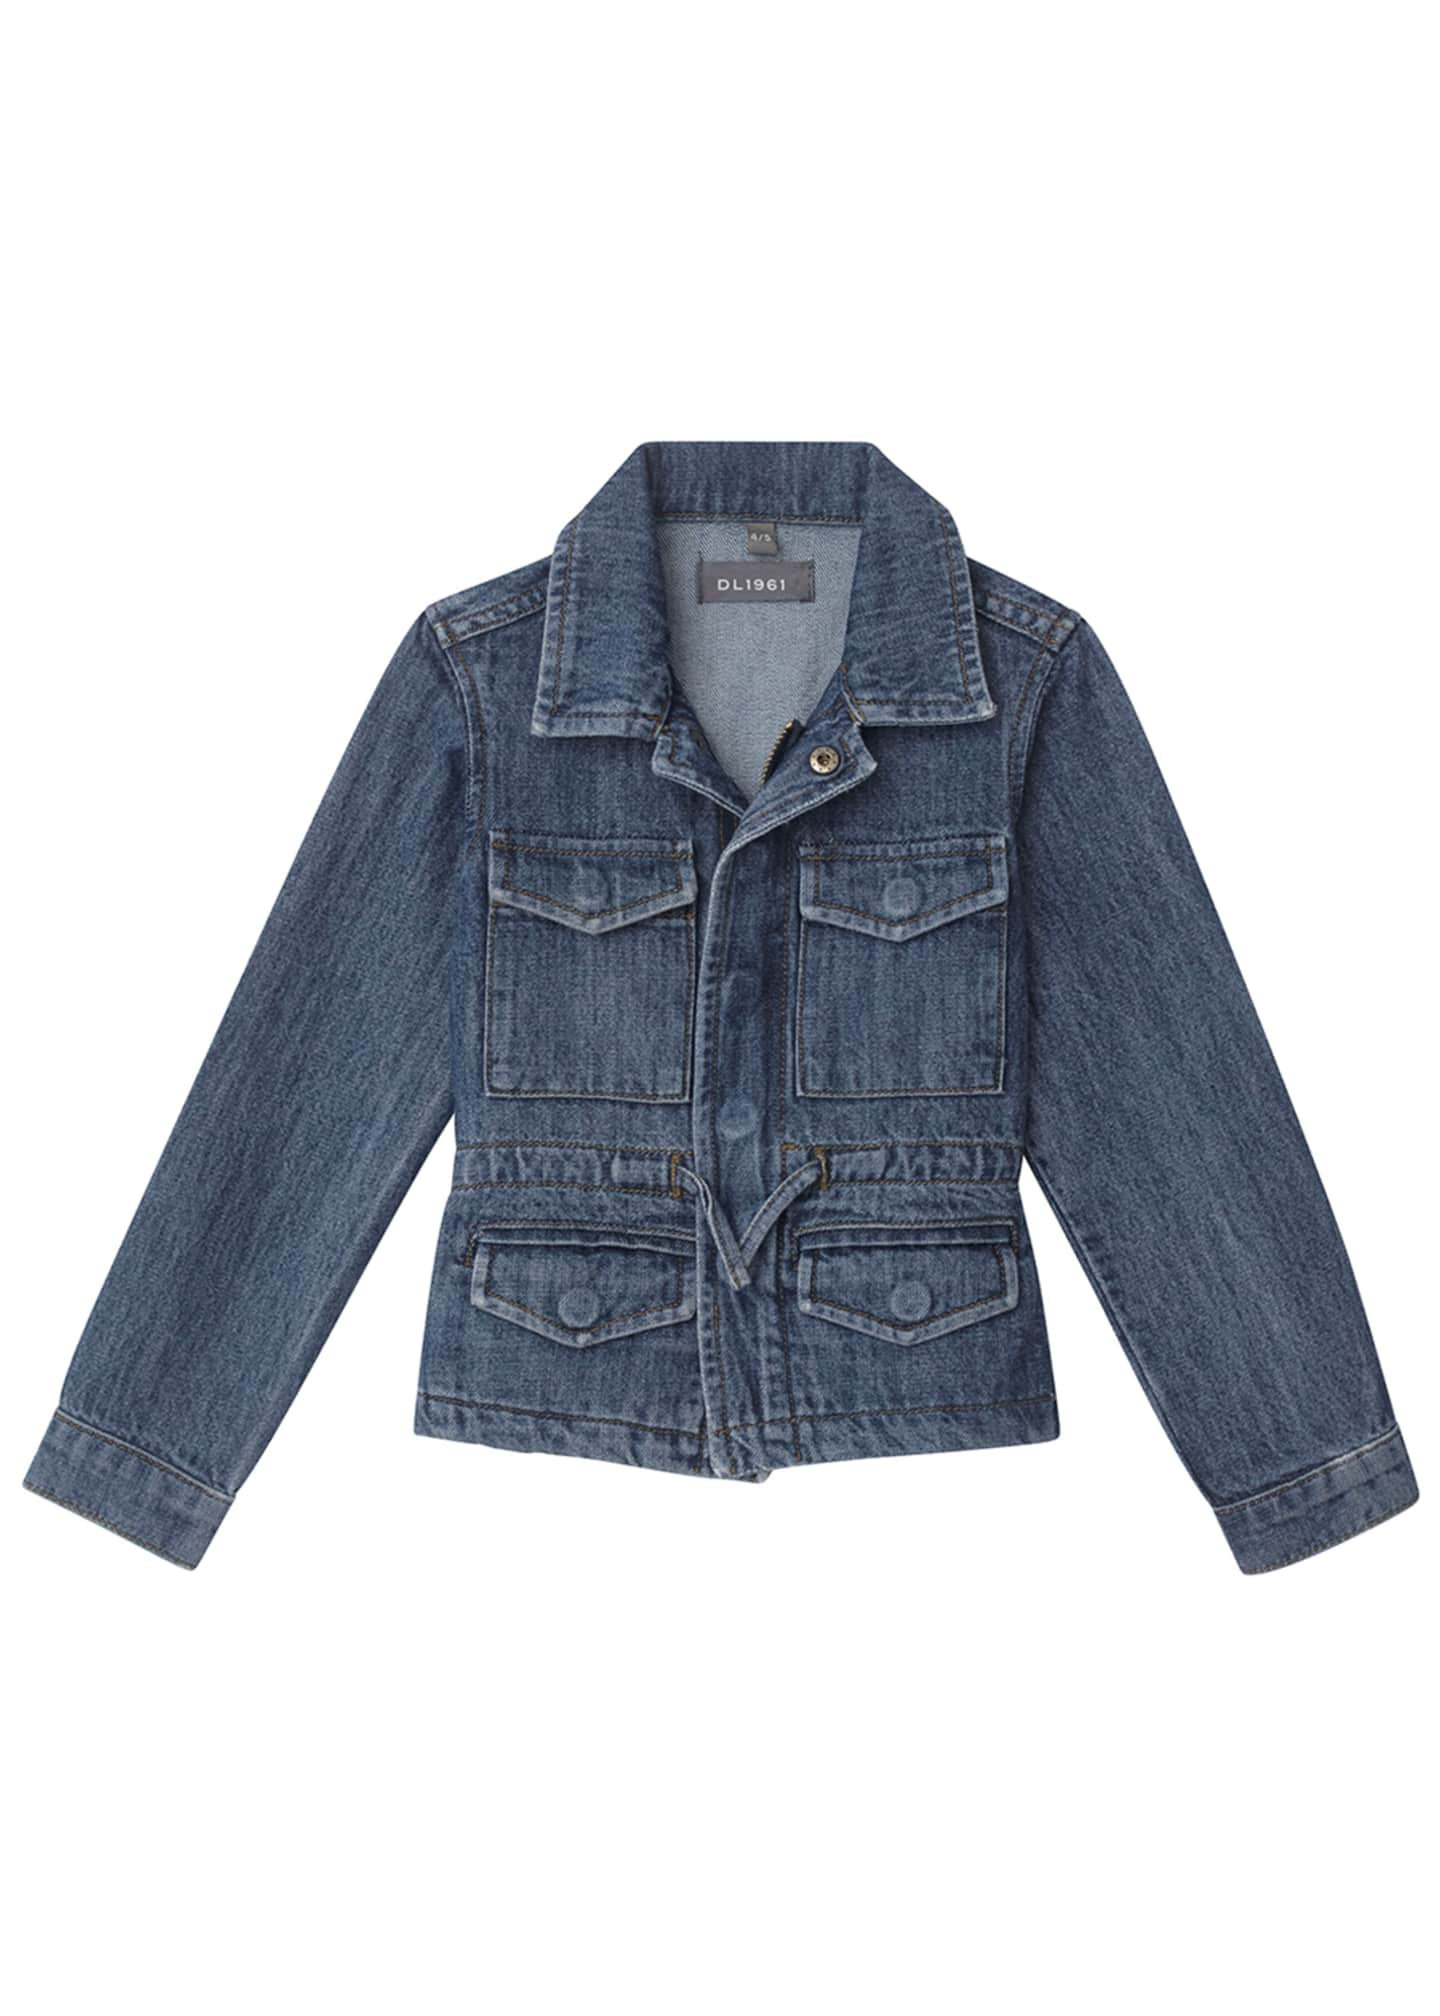 DL1961 Premium Denim Girl's Rocco Utility Jacket, Size